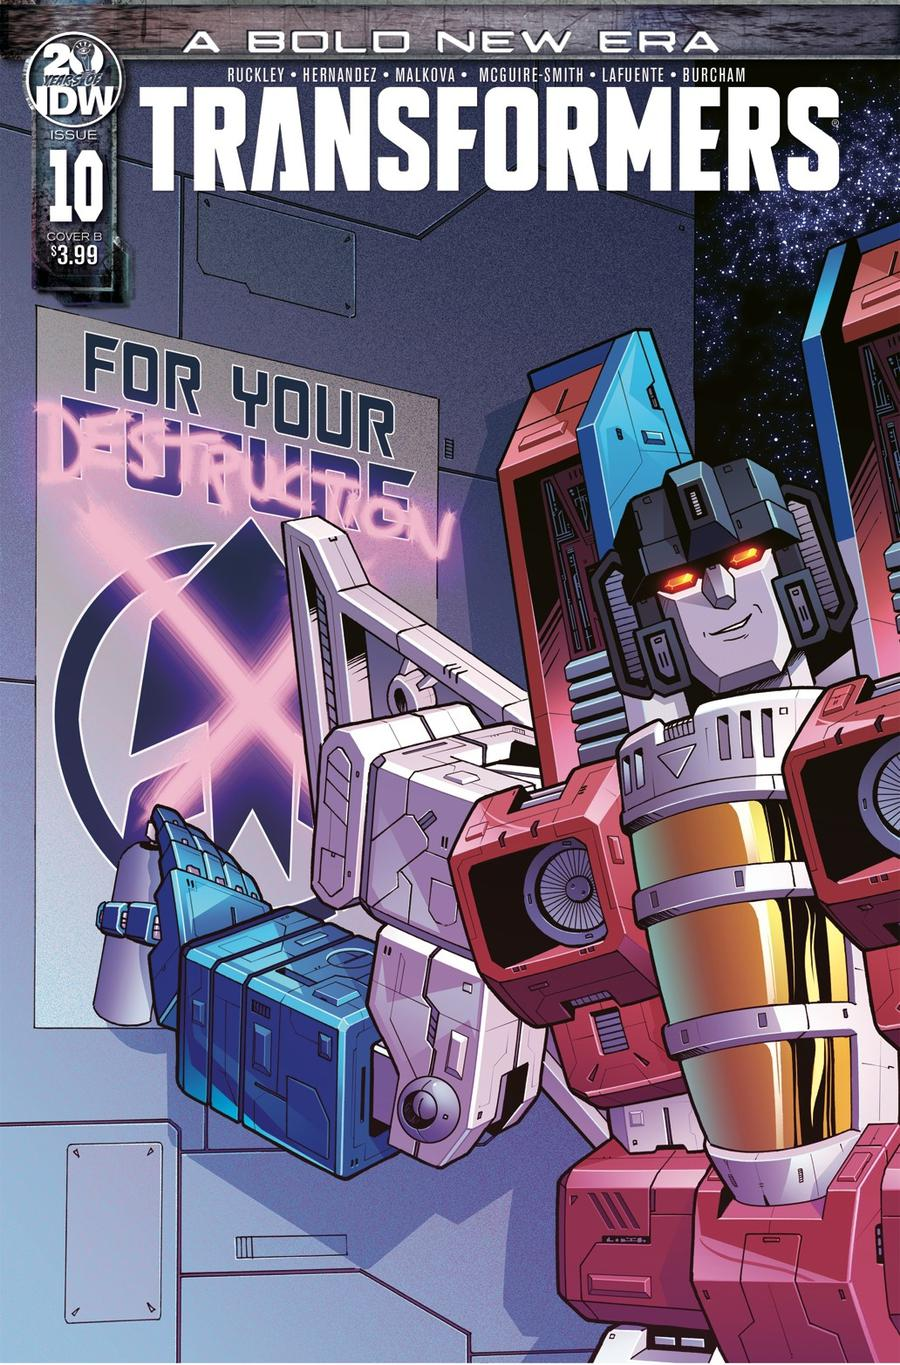 Transformers Vol 4 #10 Cover B Variant Beth McGuire-Smith Cover